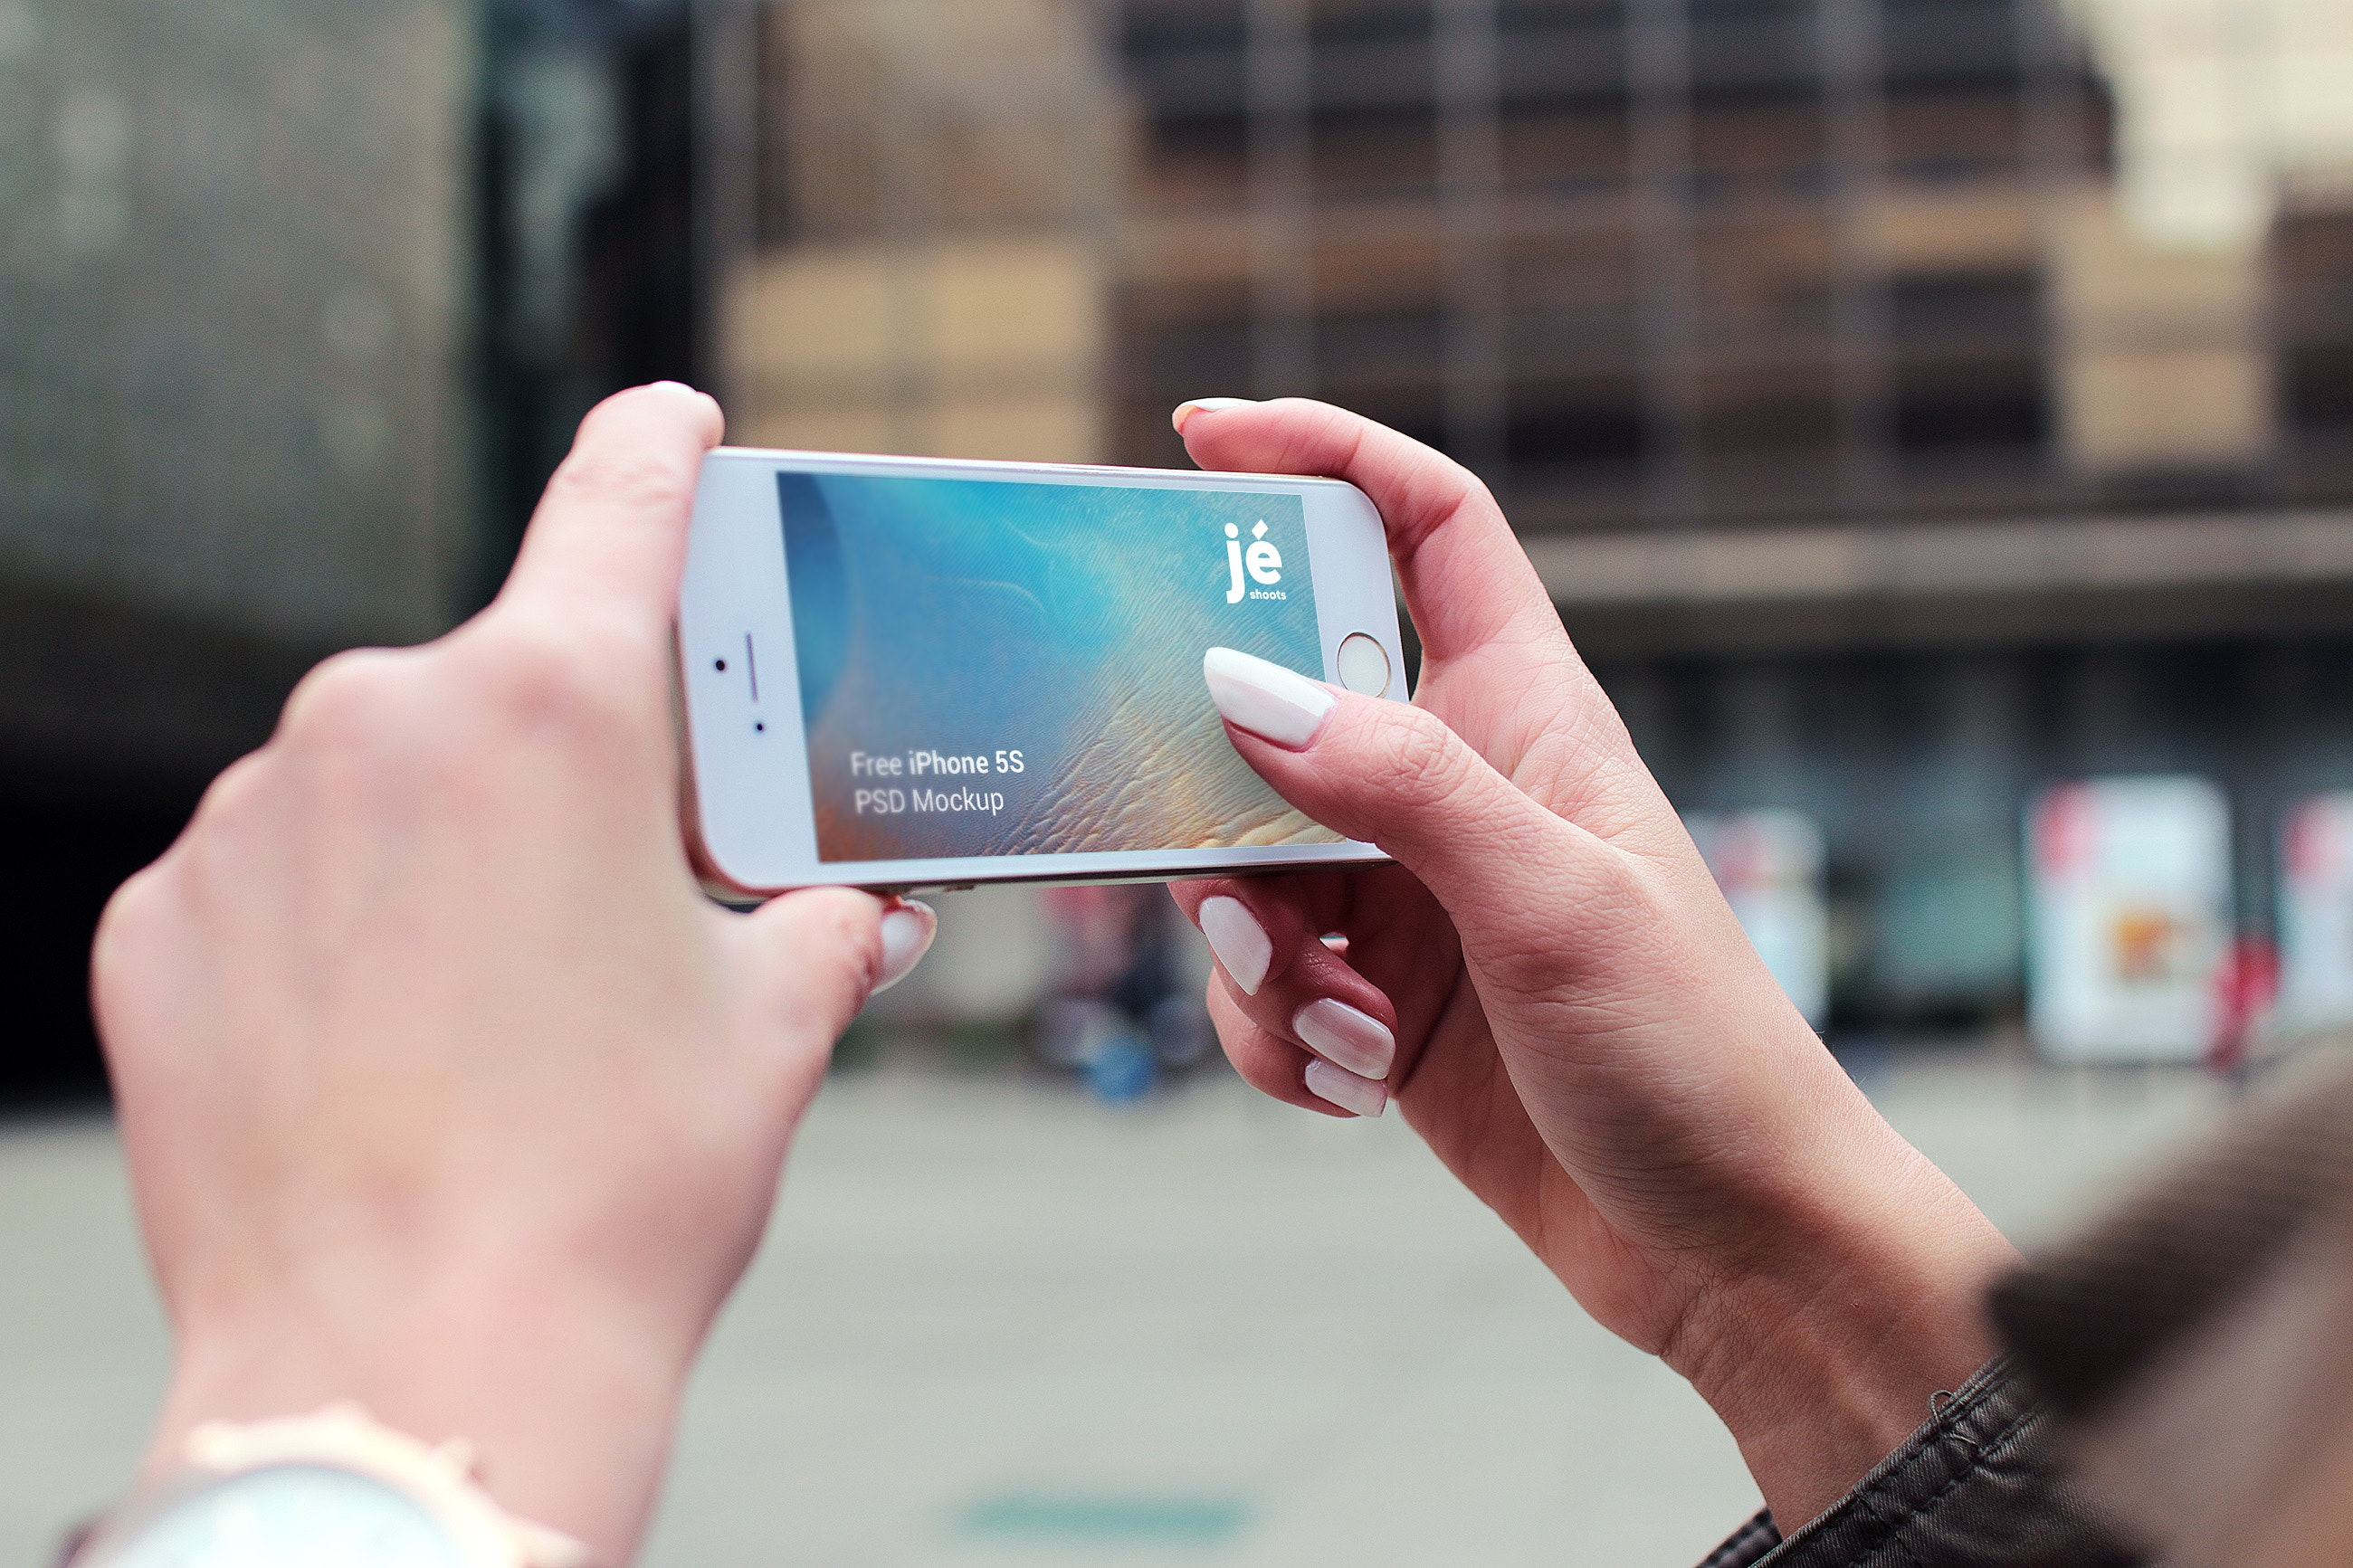 Person holding silver iphone 5s photo